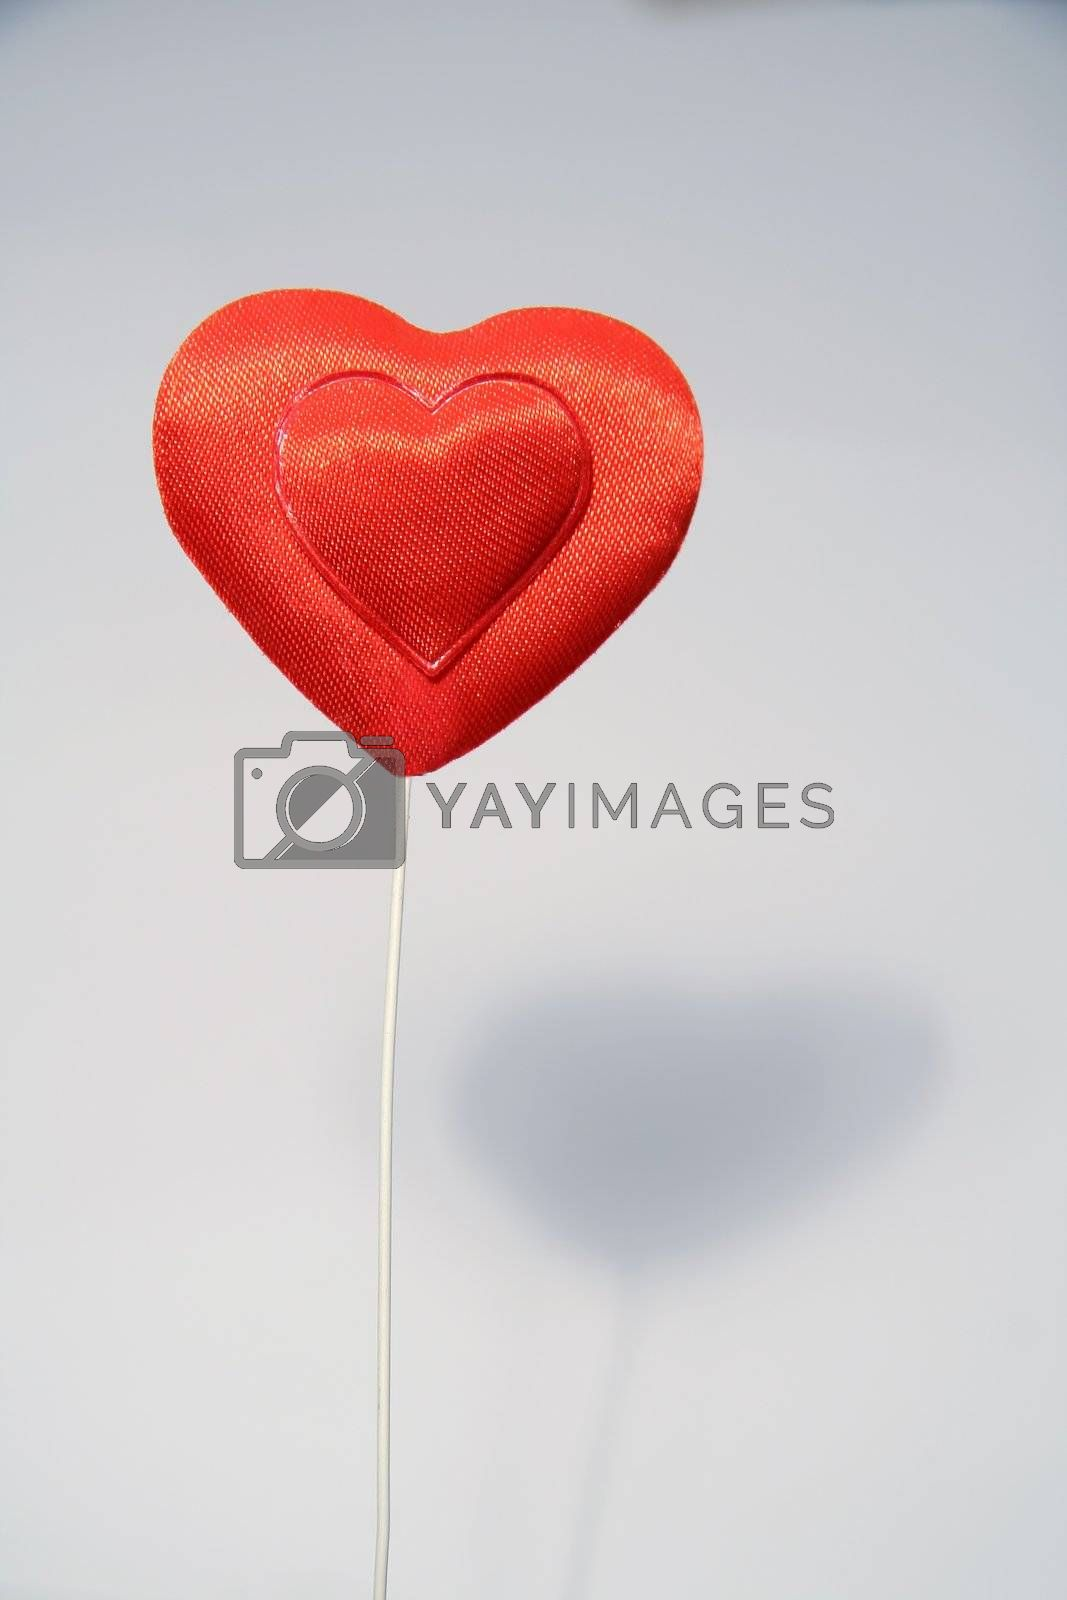 red heart on grey background, blurred shadow